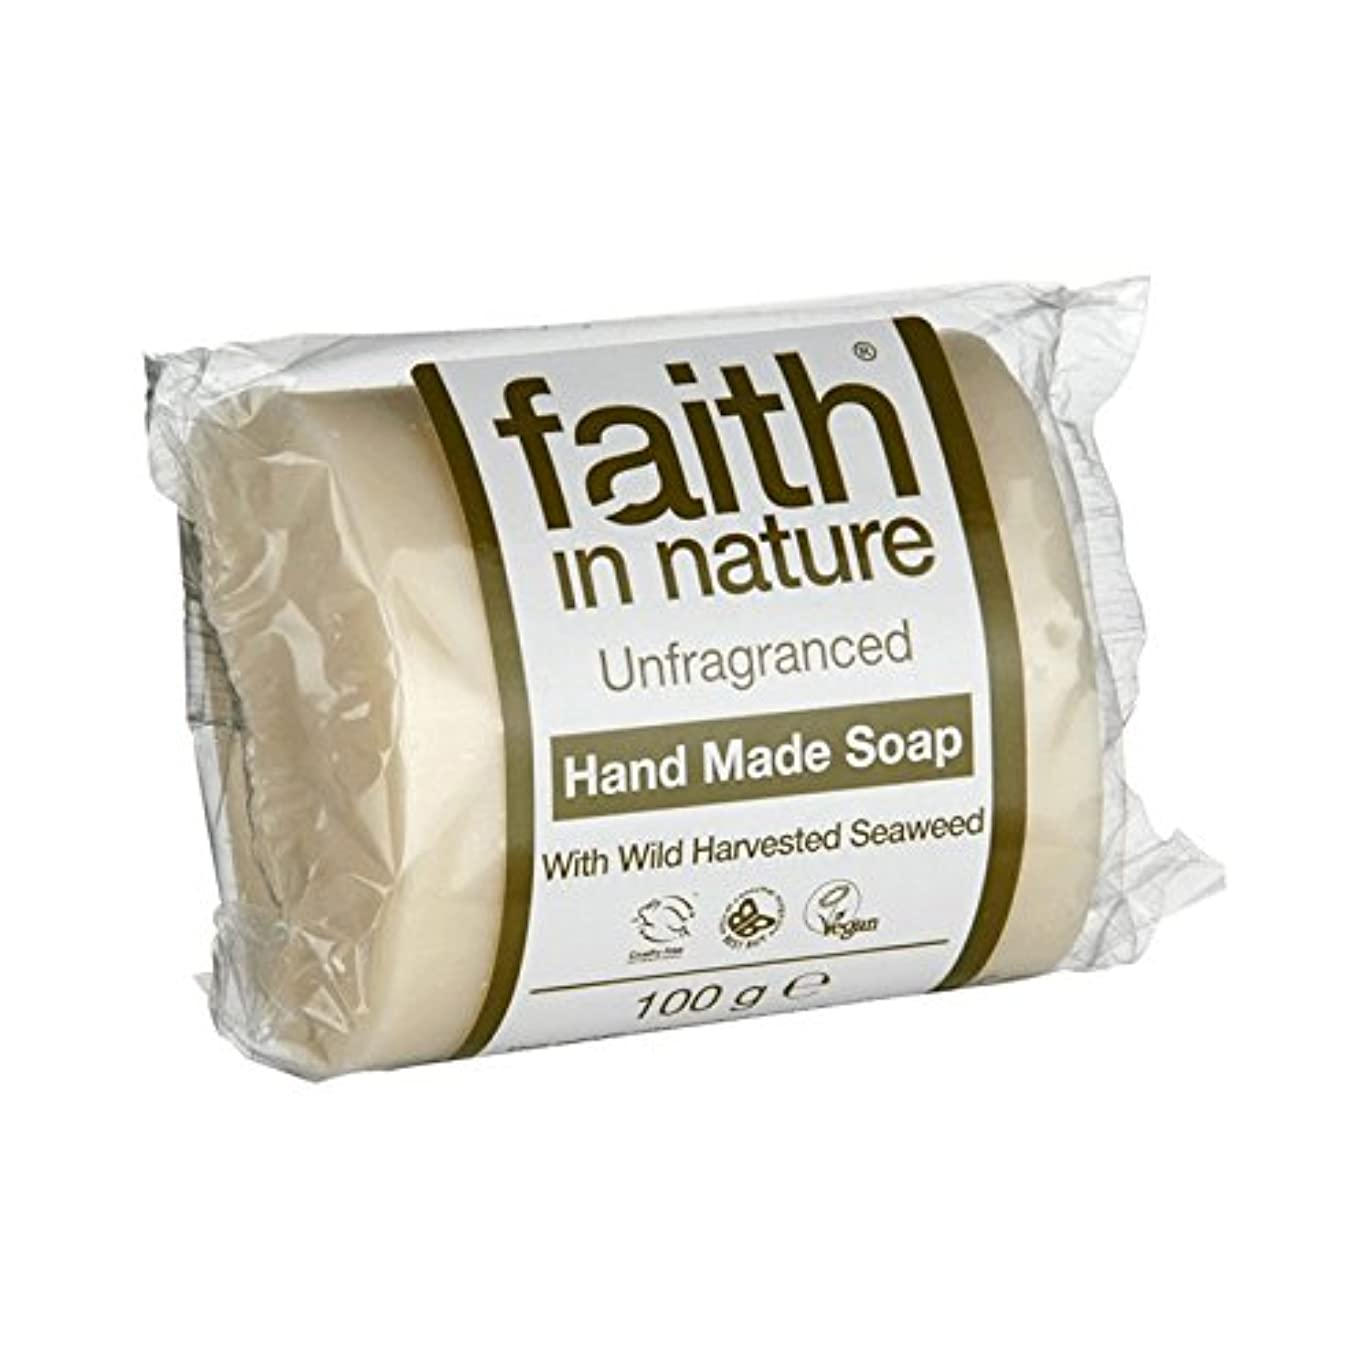 Faith in Nature Unfragranced Seaweed Soap 100g (Pack of 6) - 自然無香料海藻石鹸100グラムの信仰 (x6) [並行輸入品]